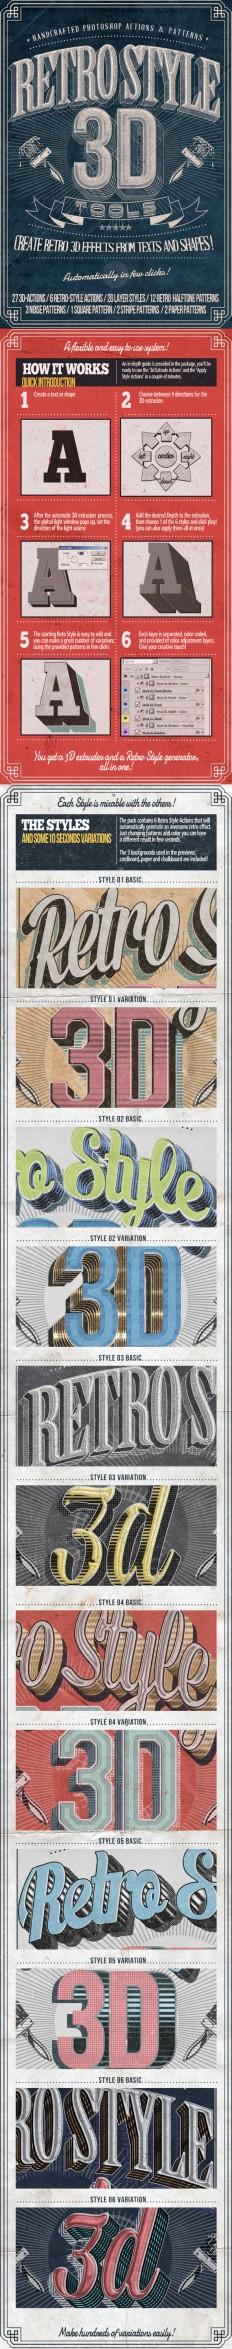 Retro Style 3D Tools – Photoshop Actions on Inspirationde